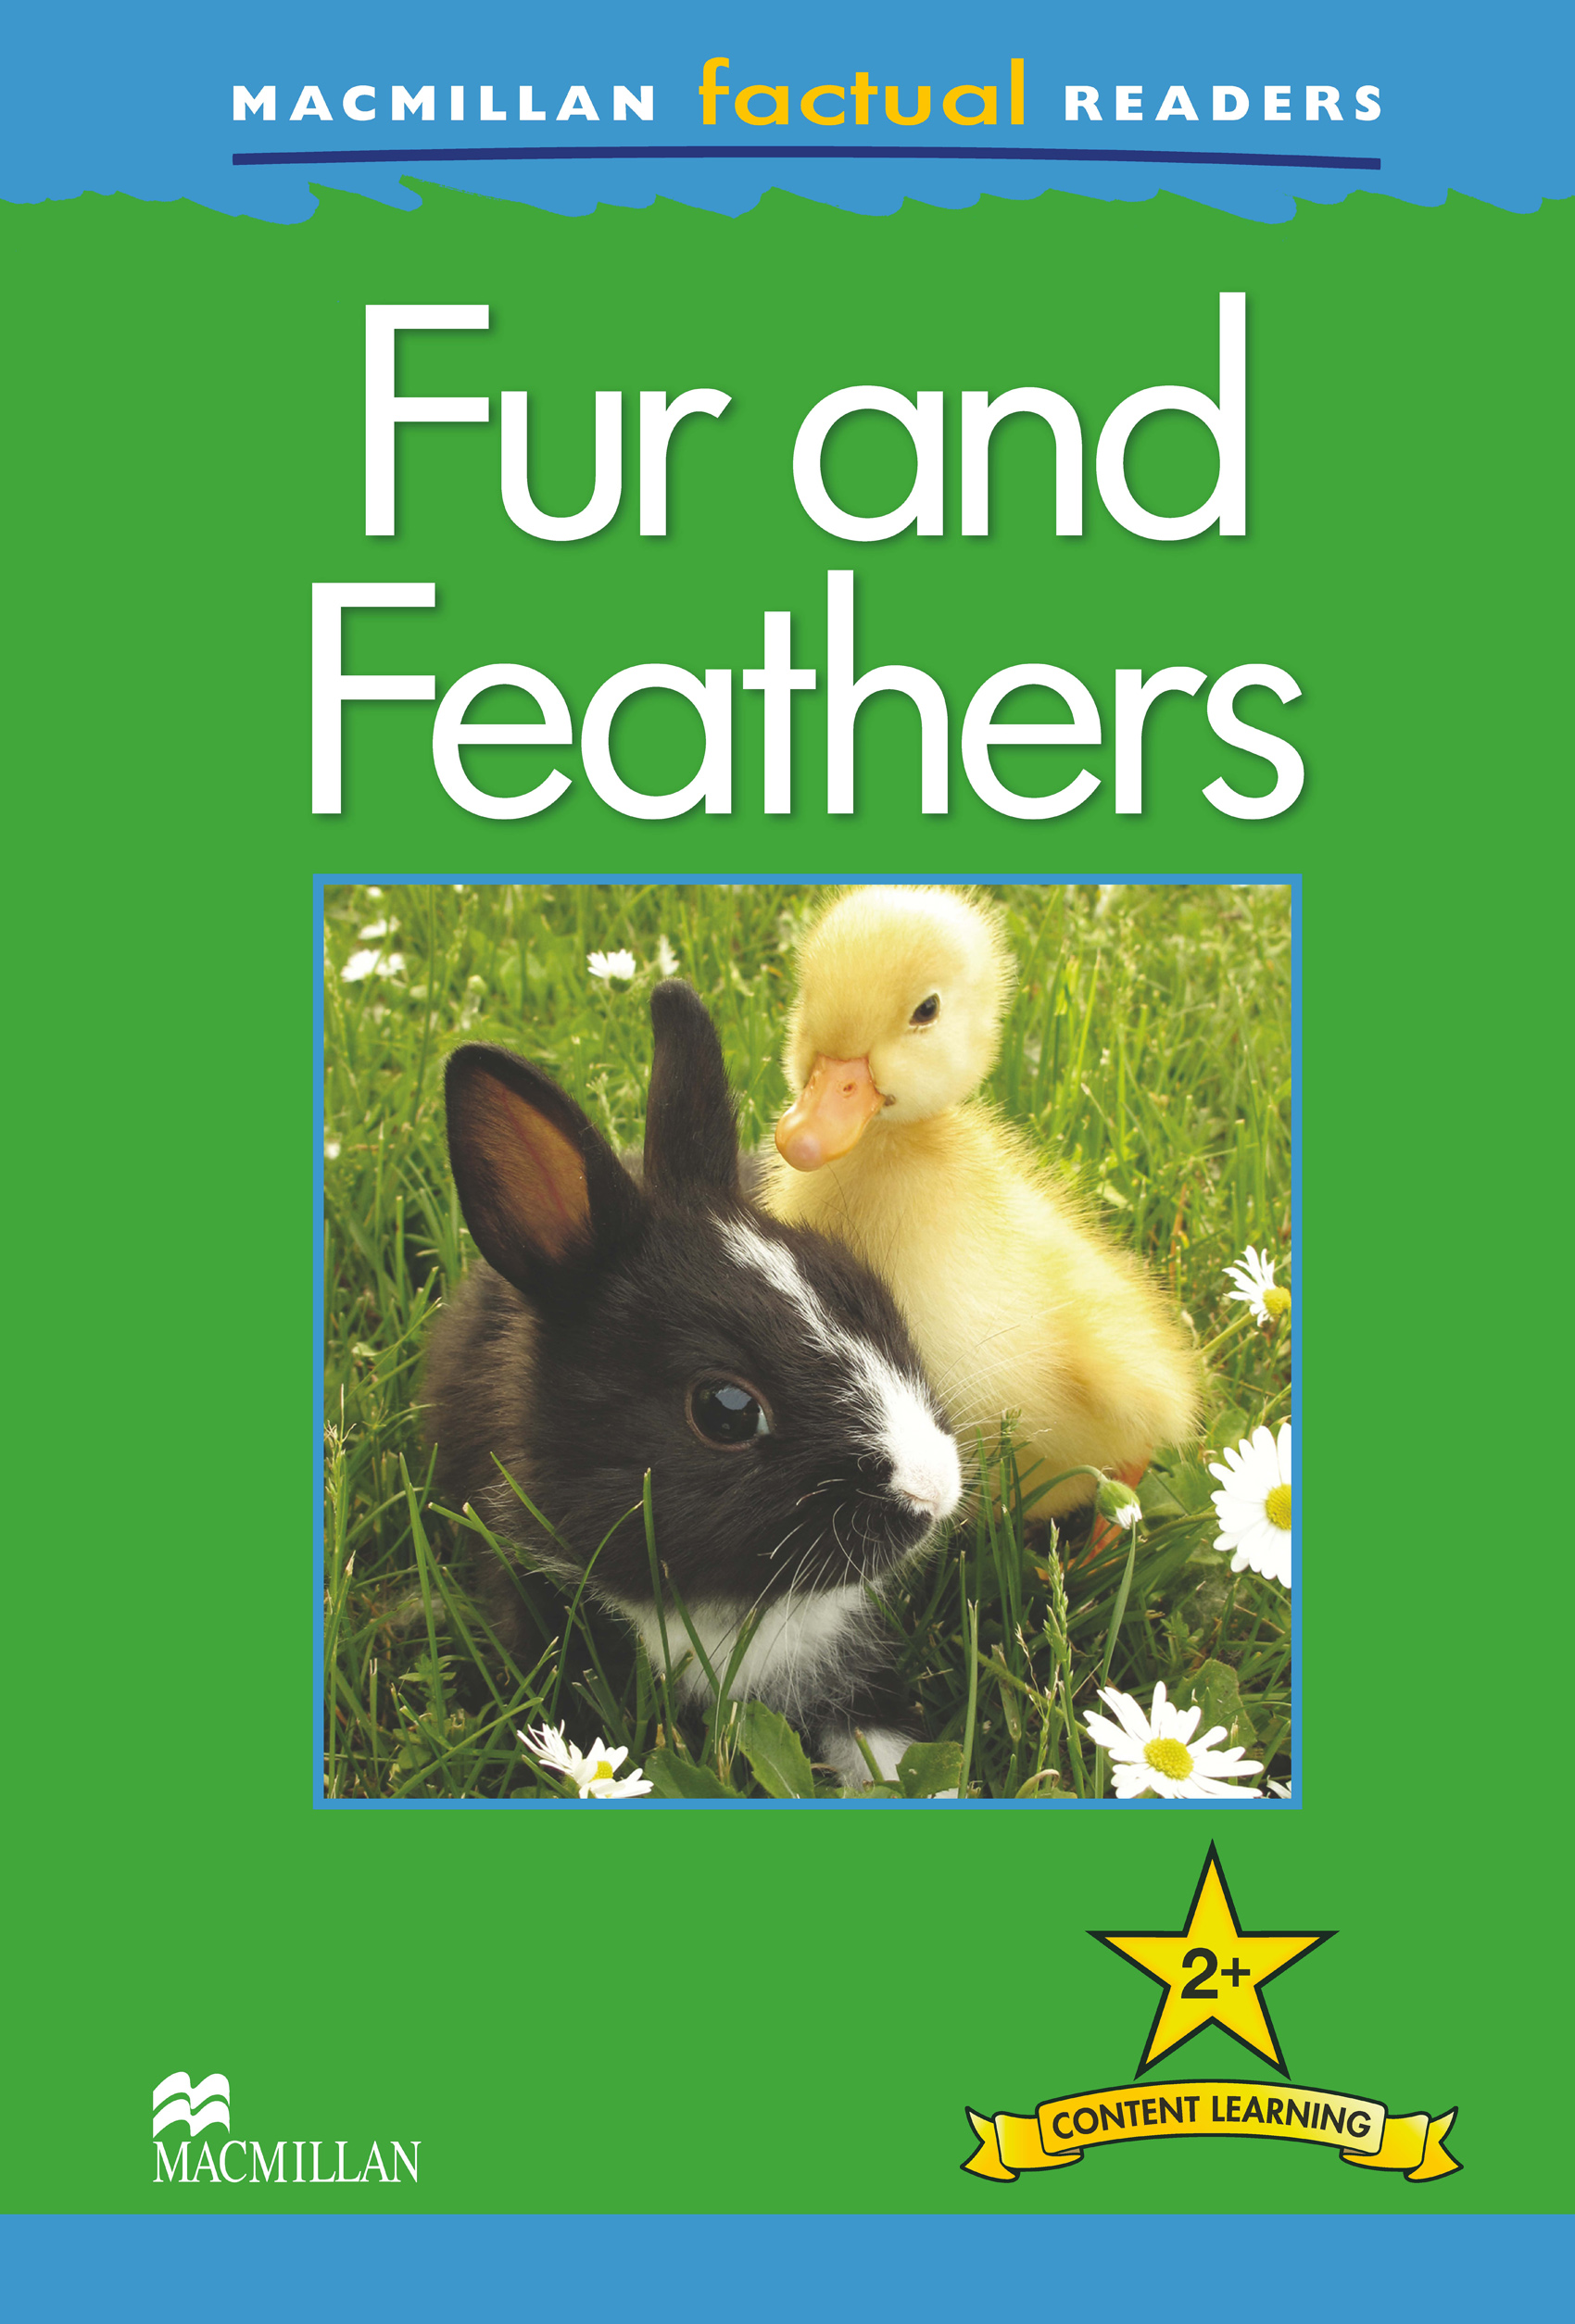 Macmillan Factual Readers: Fur and Feathers